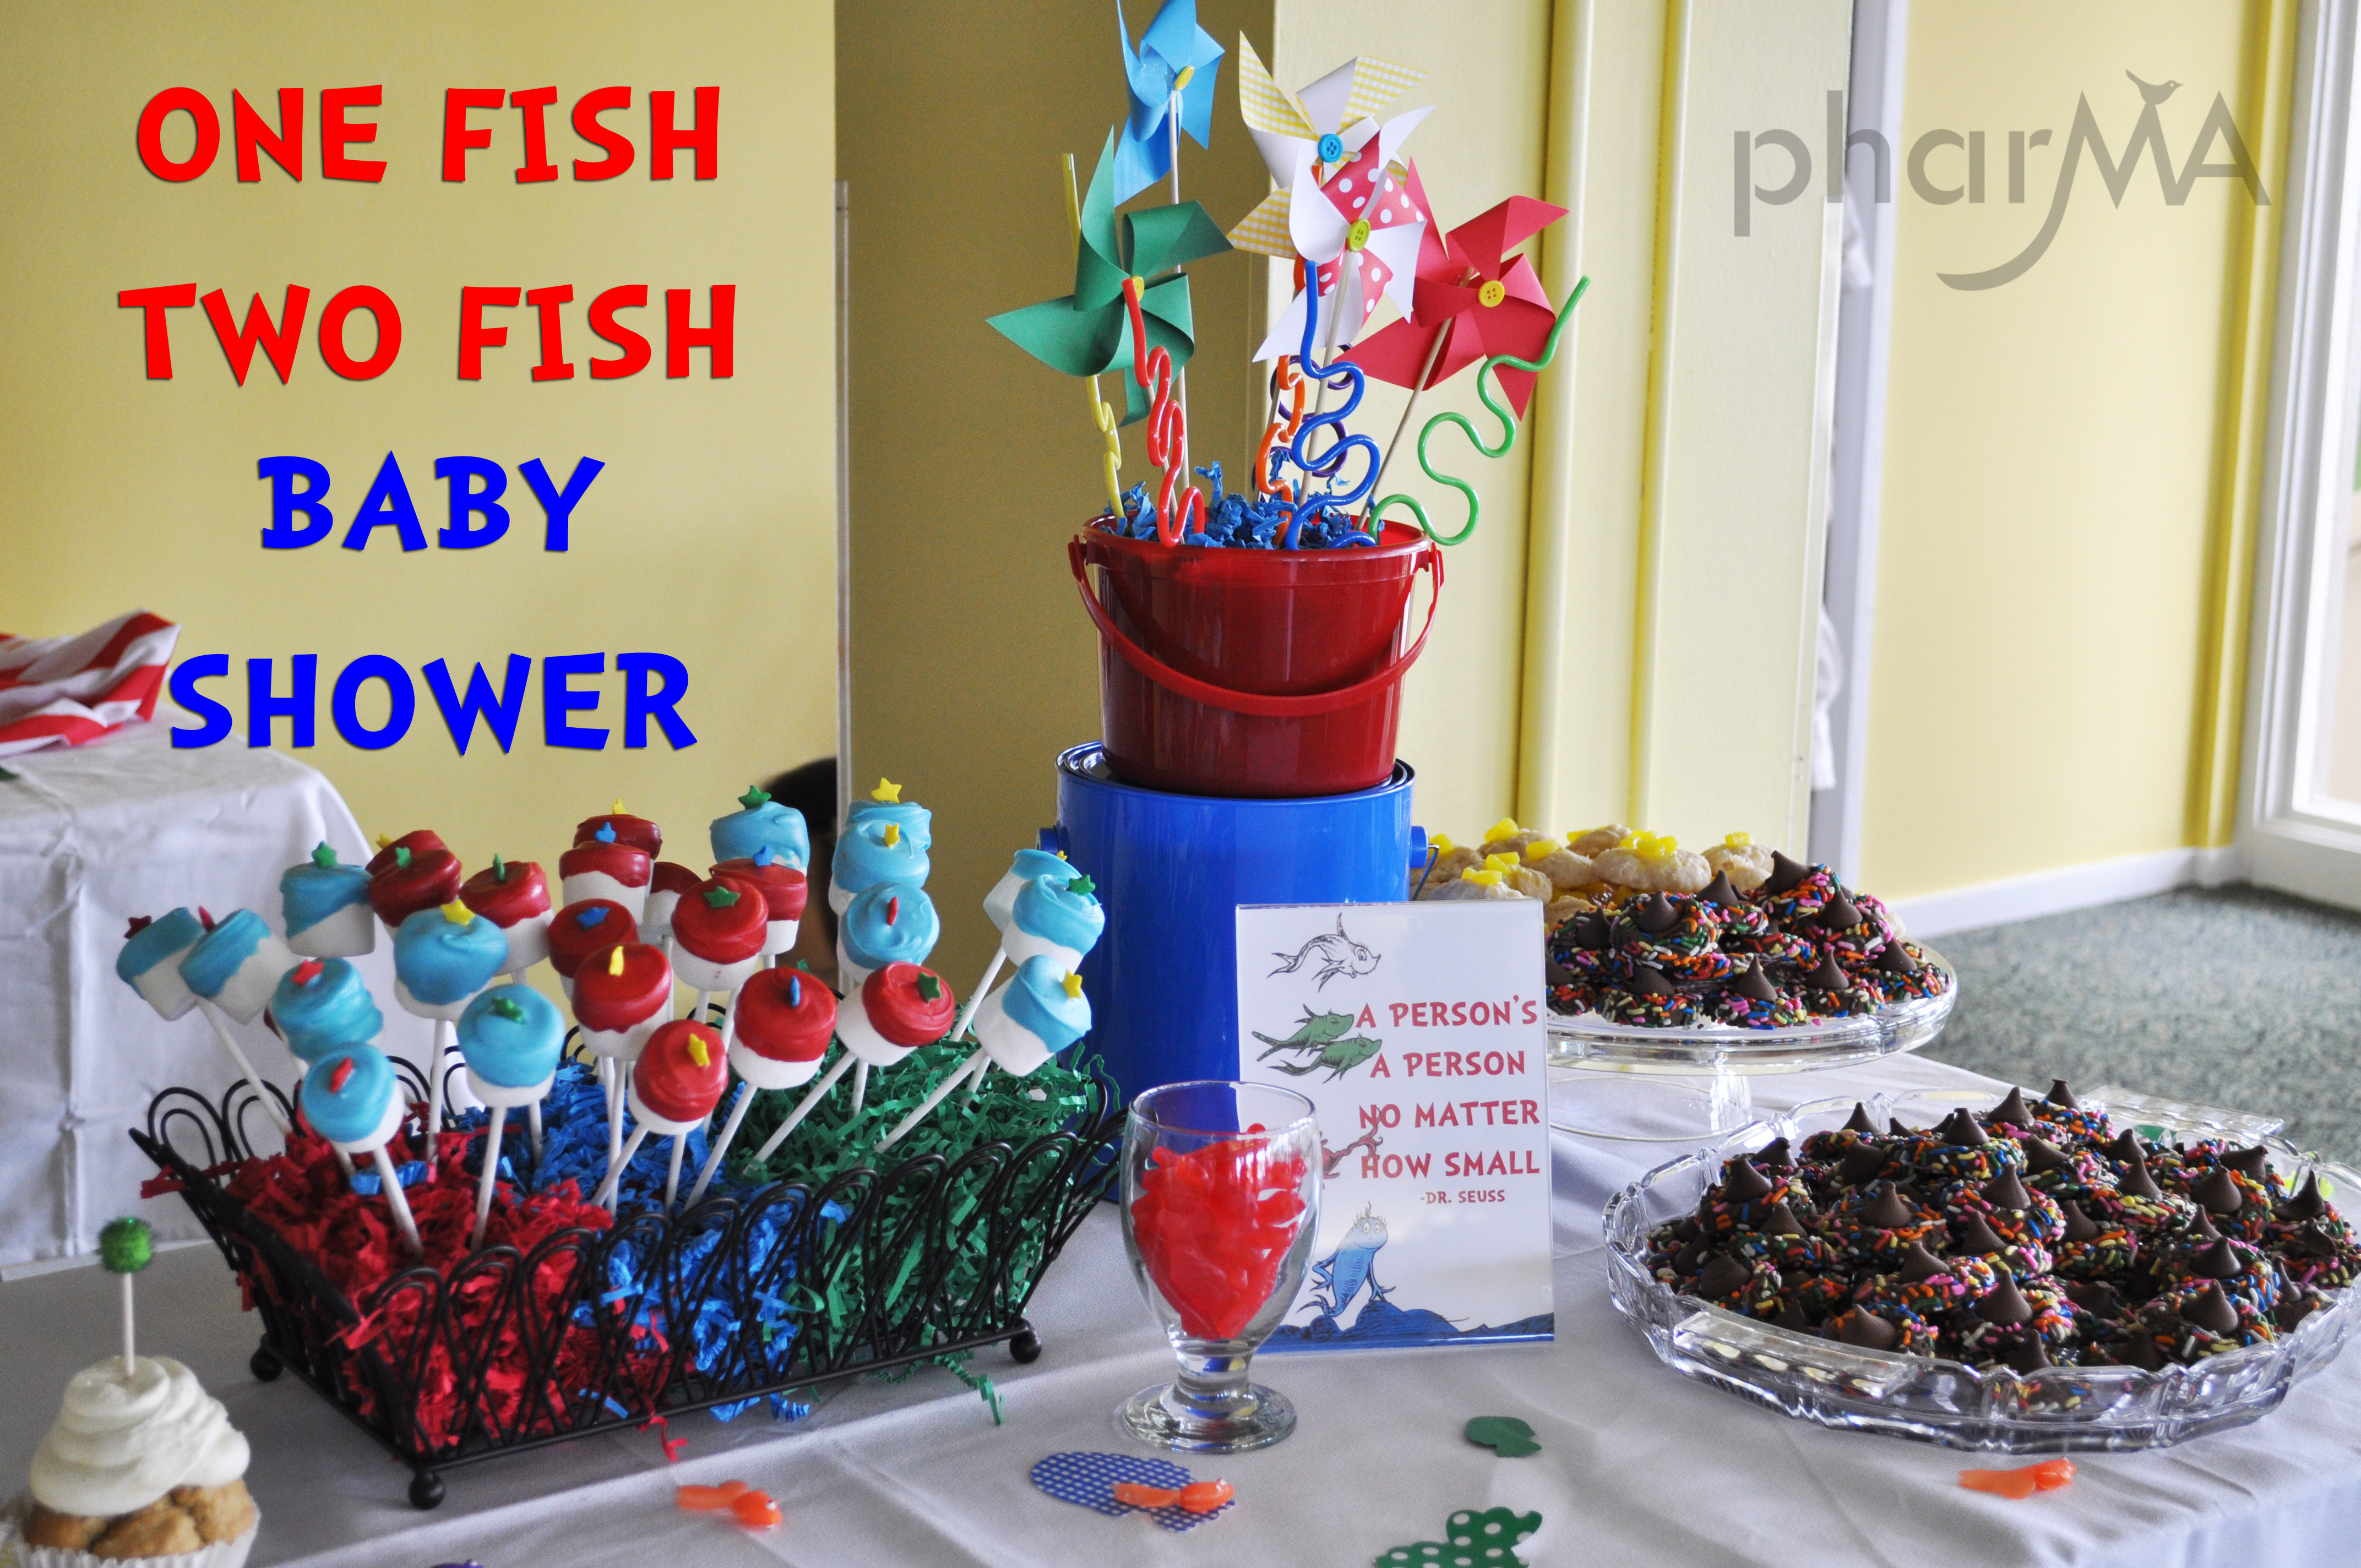 One fish two fish baby shower the pharma blog for Fishing baby shower